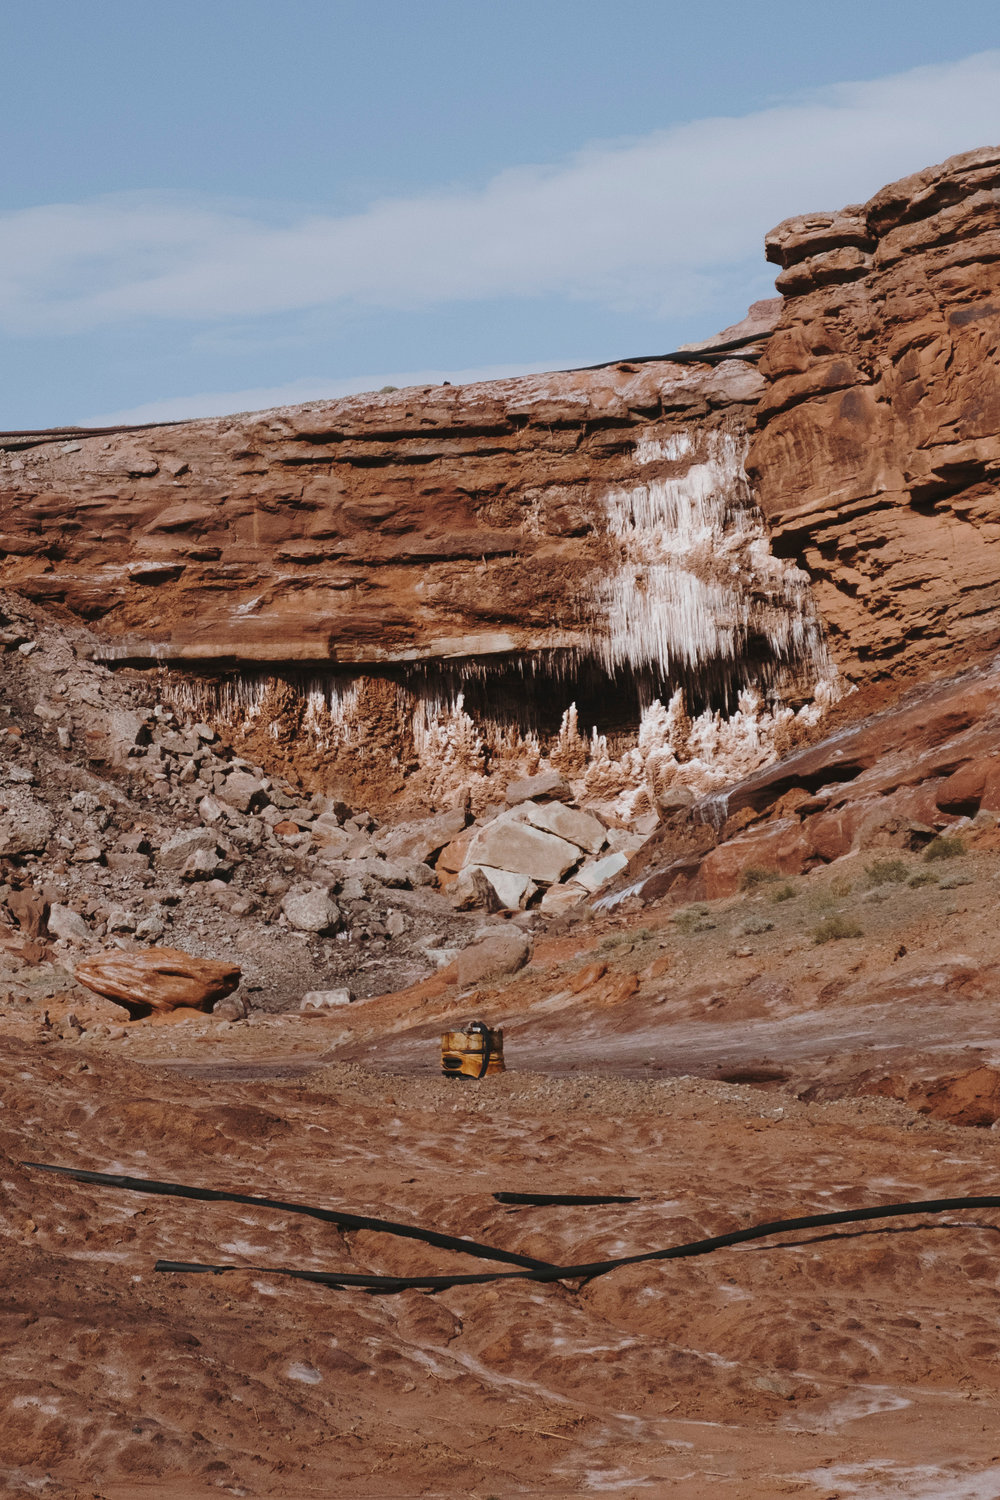 Salt moved by water,  Moab, Utah, 2018.